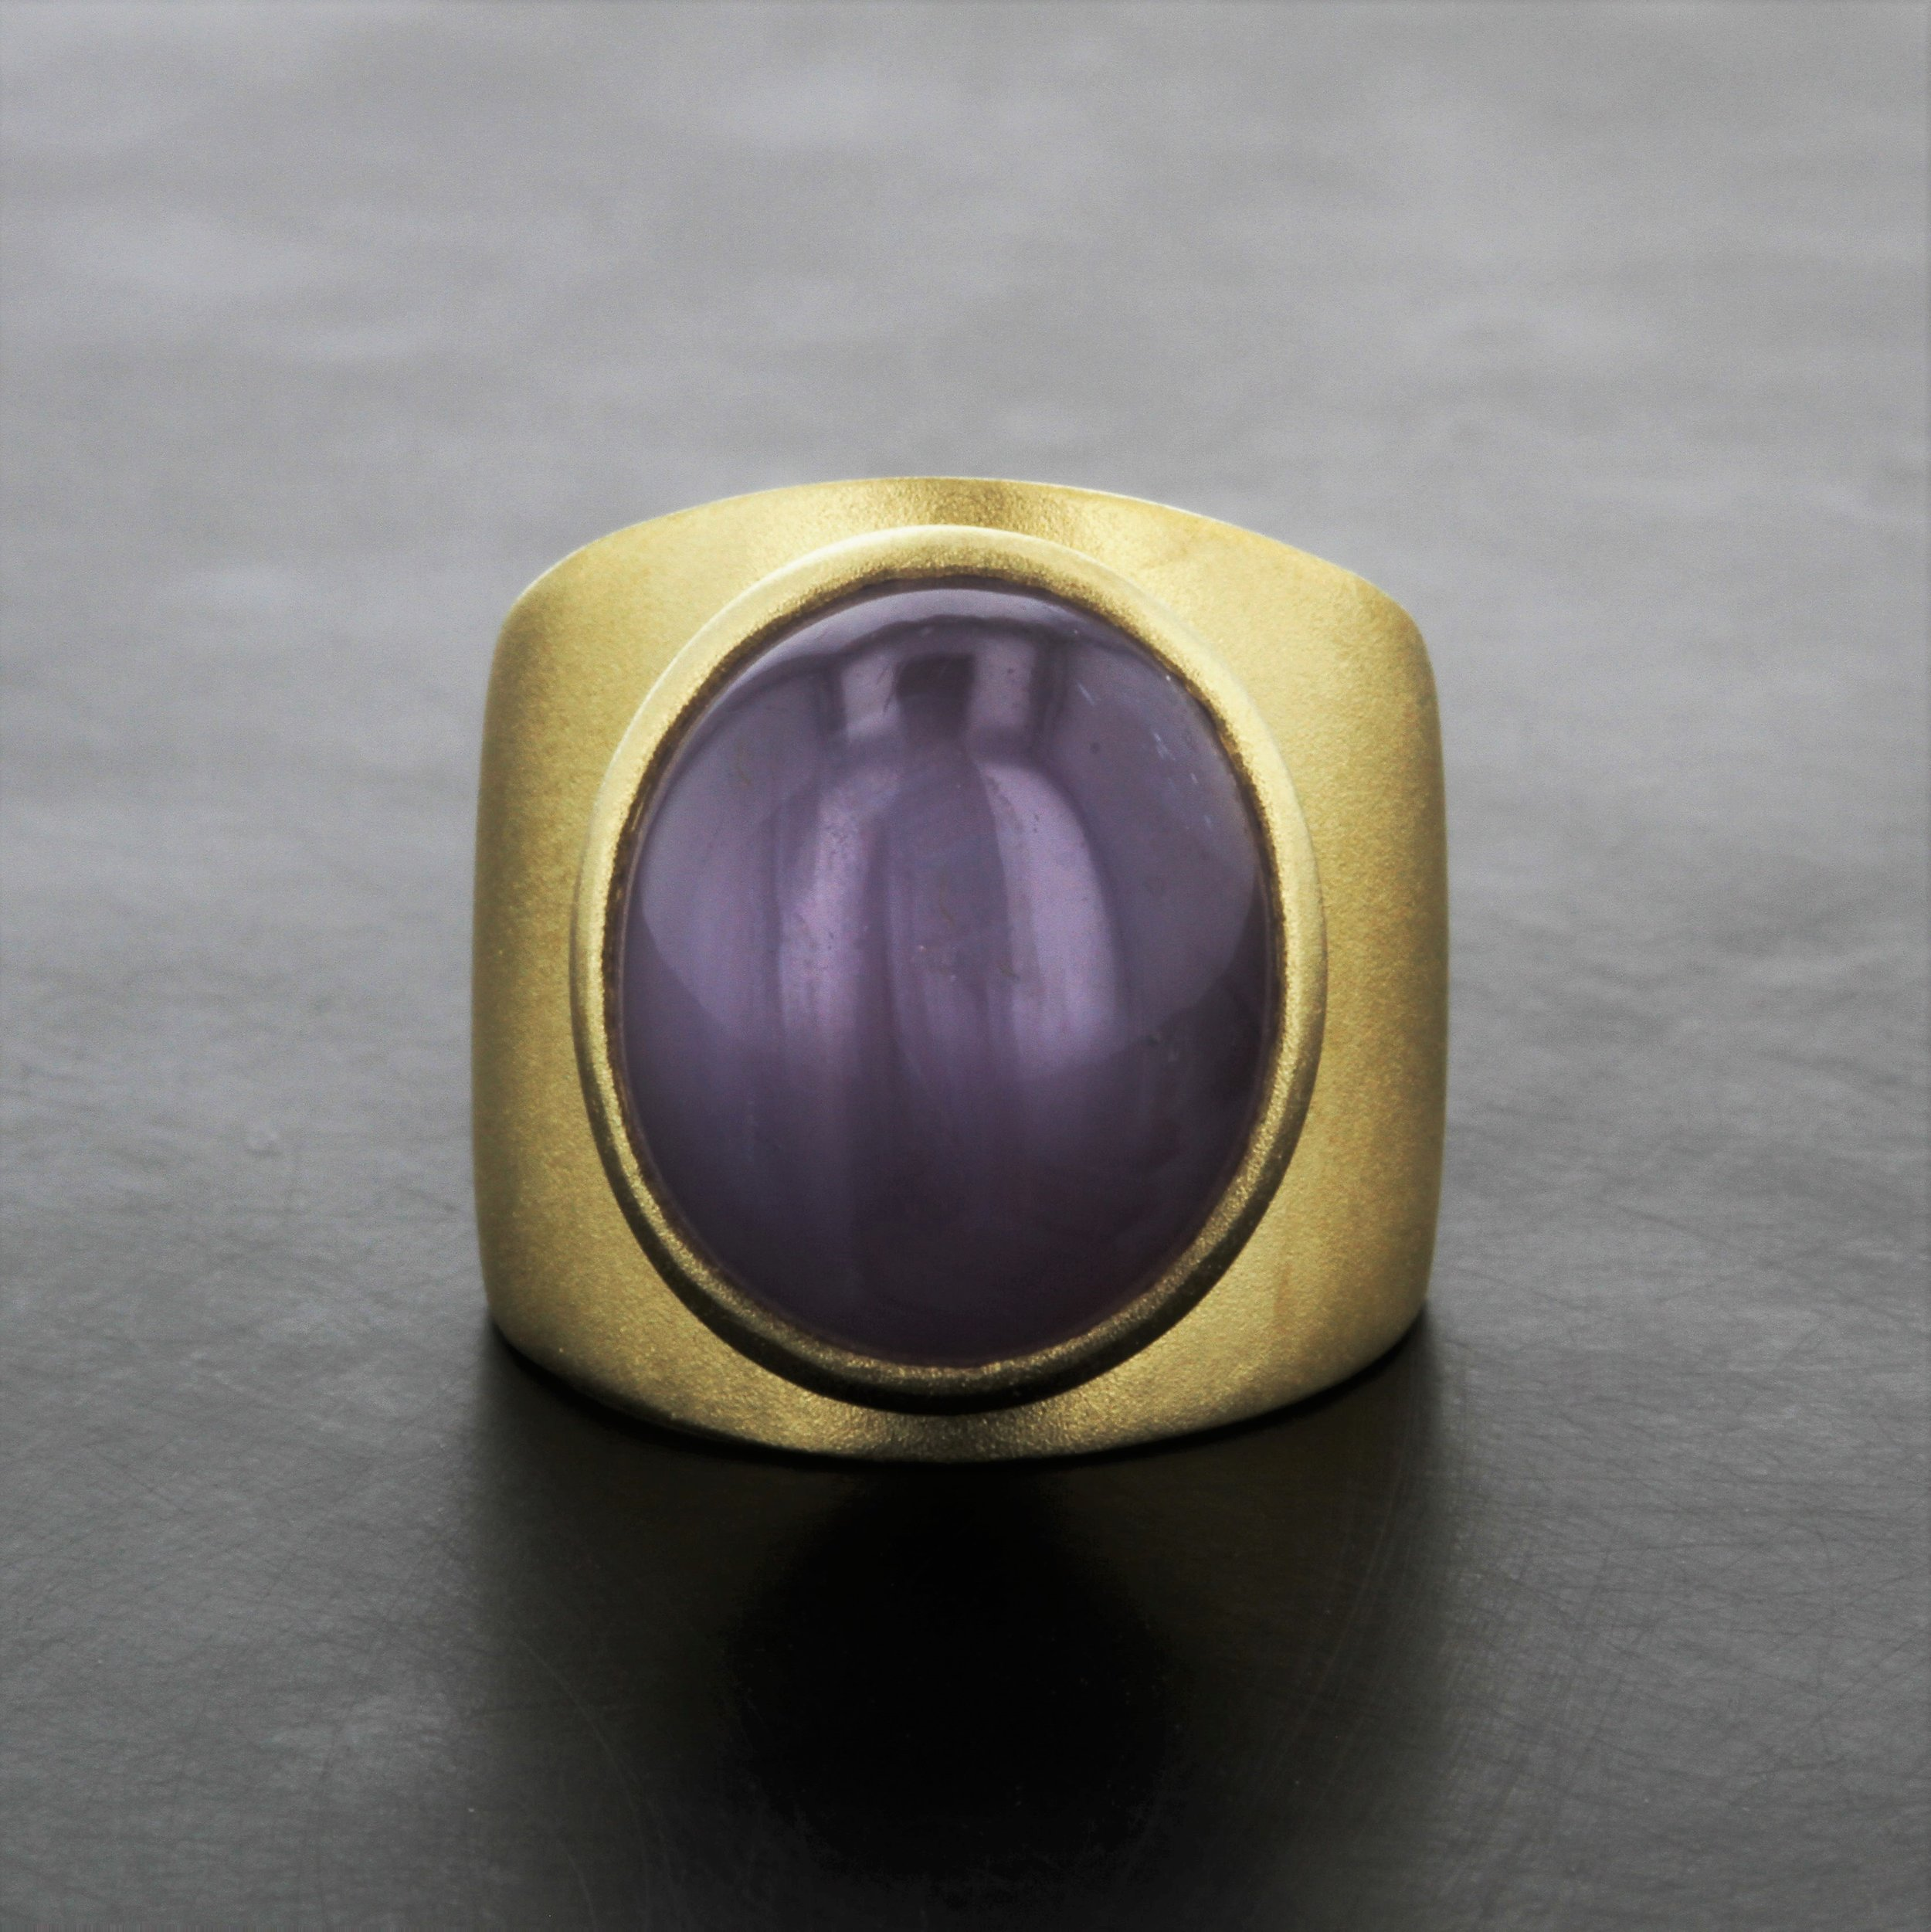 18K-yellow-gold-matte-texture-wide-cigar-band-ring-cabochon-star-ruby-custom.jpg